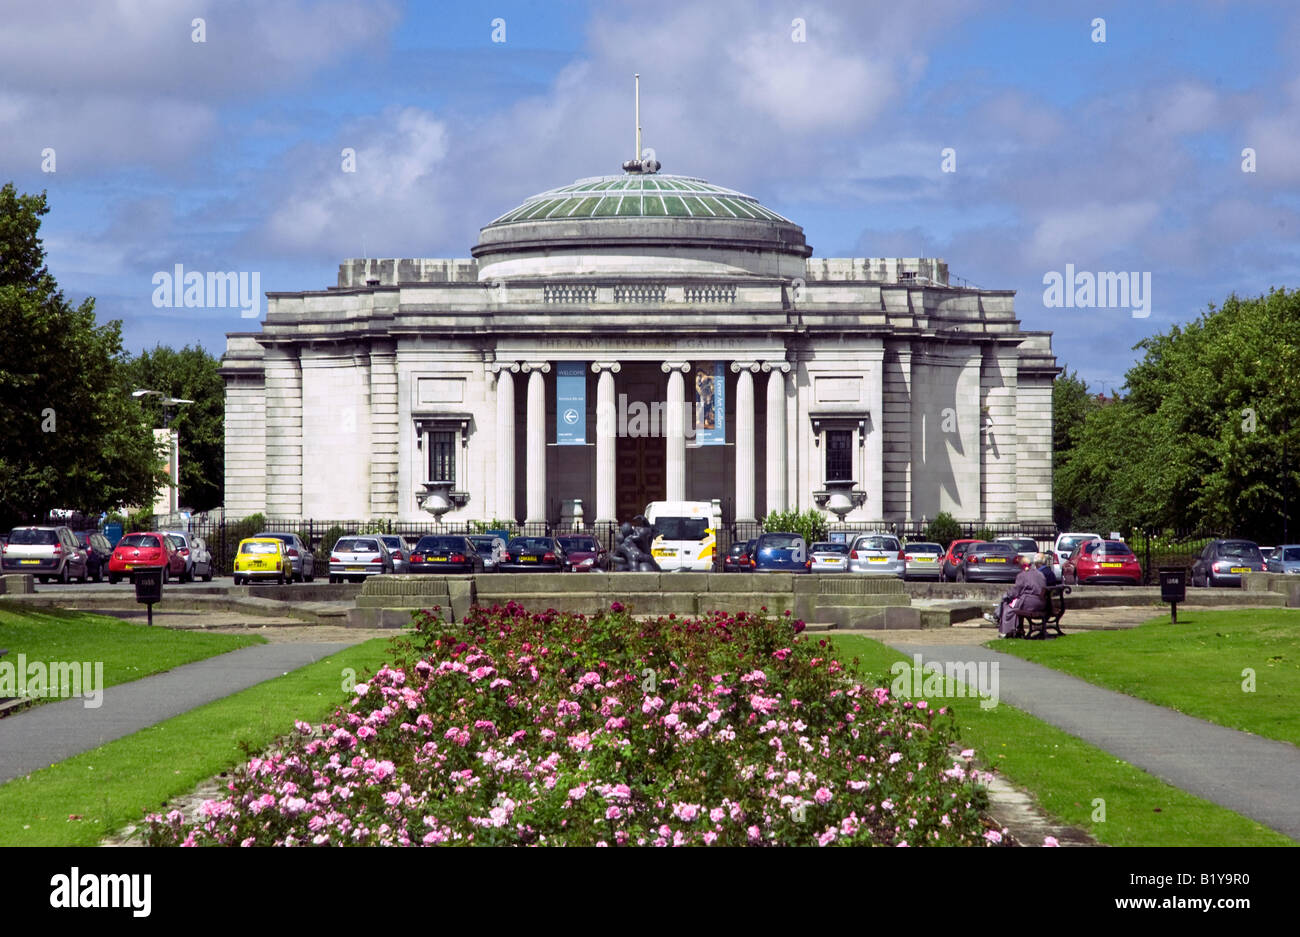 Lady Lever art gallery in Port Sunlight village on the Wirral. - Stock Image